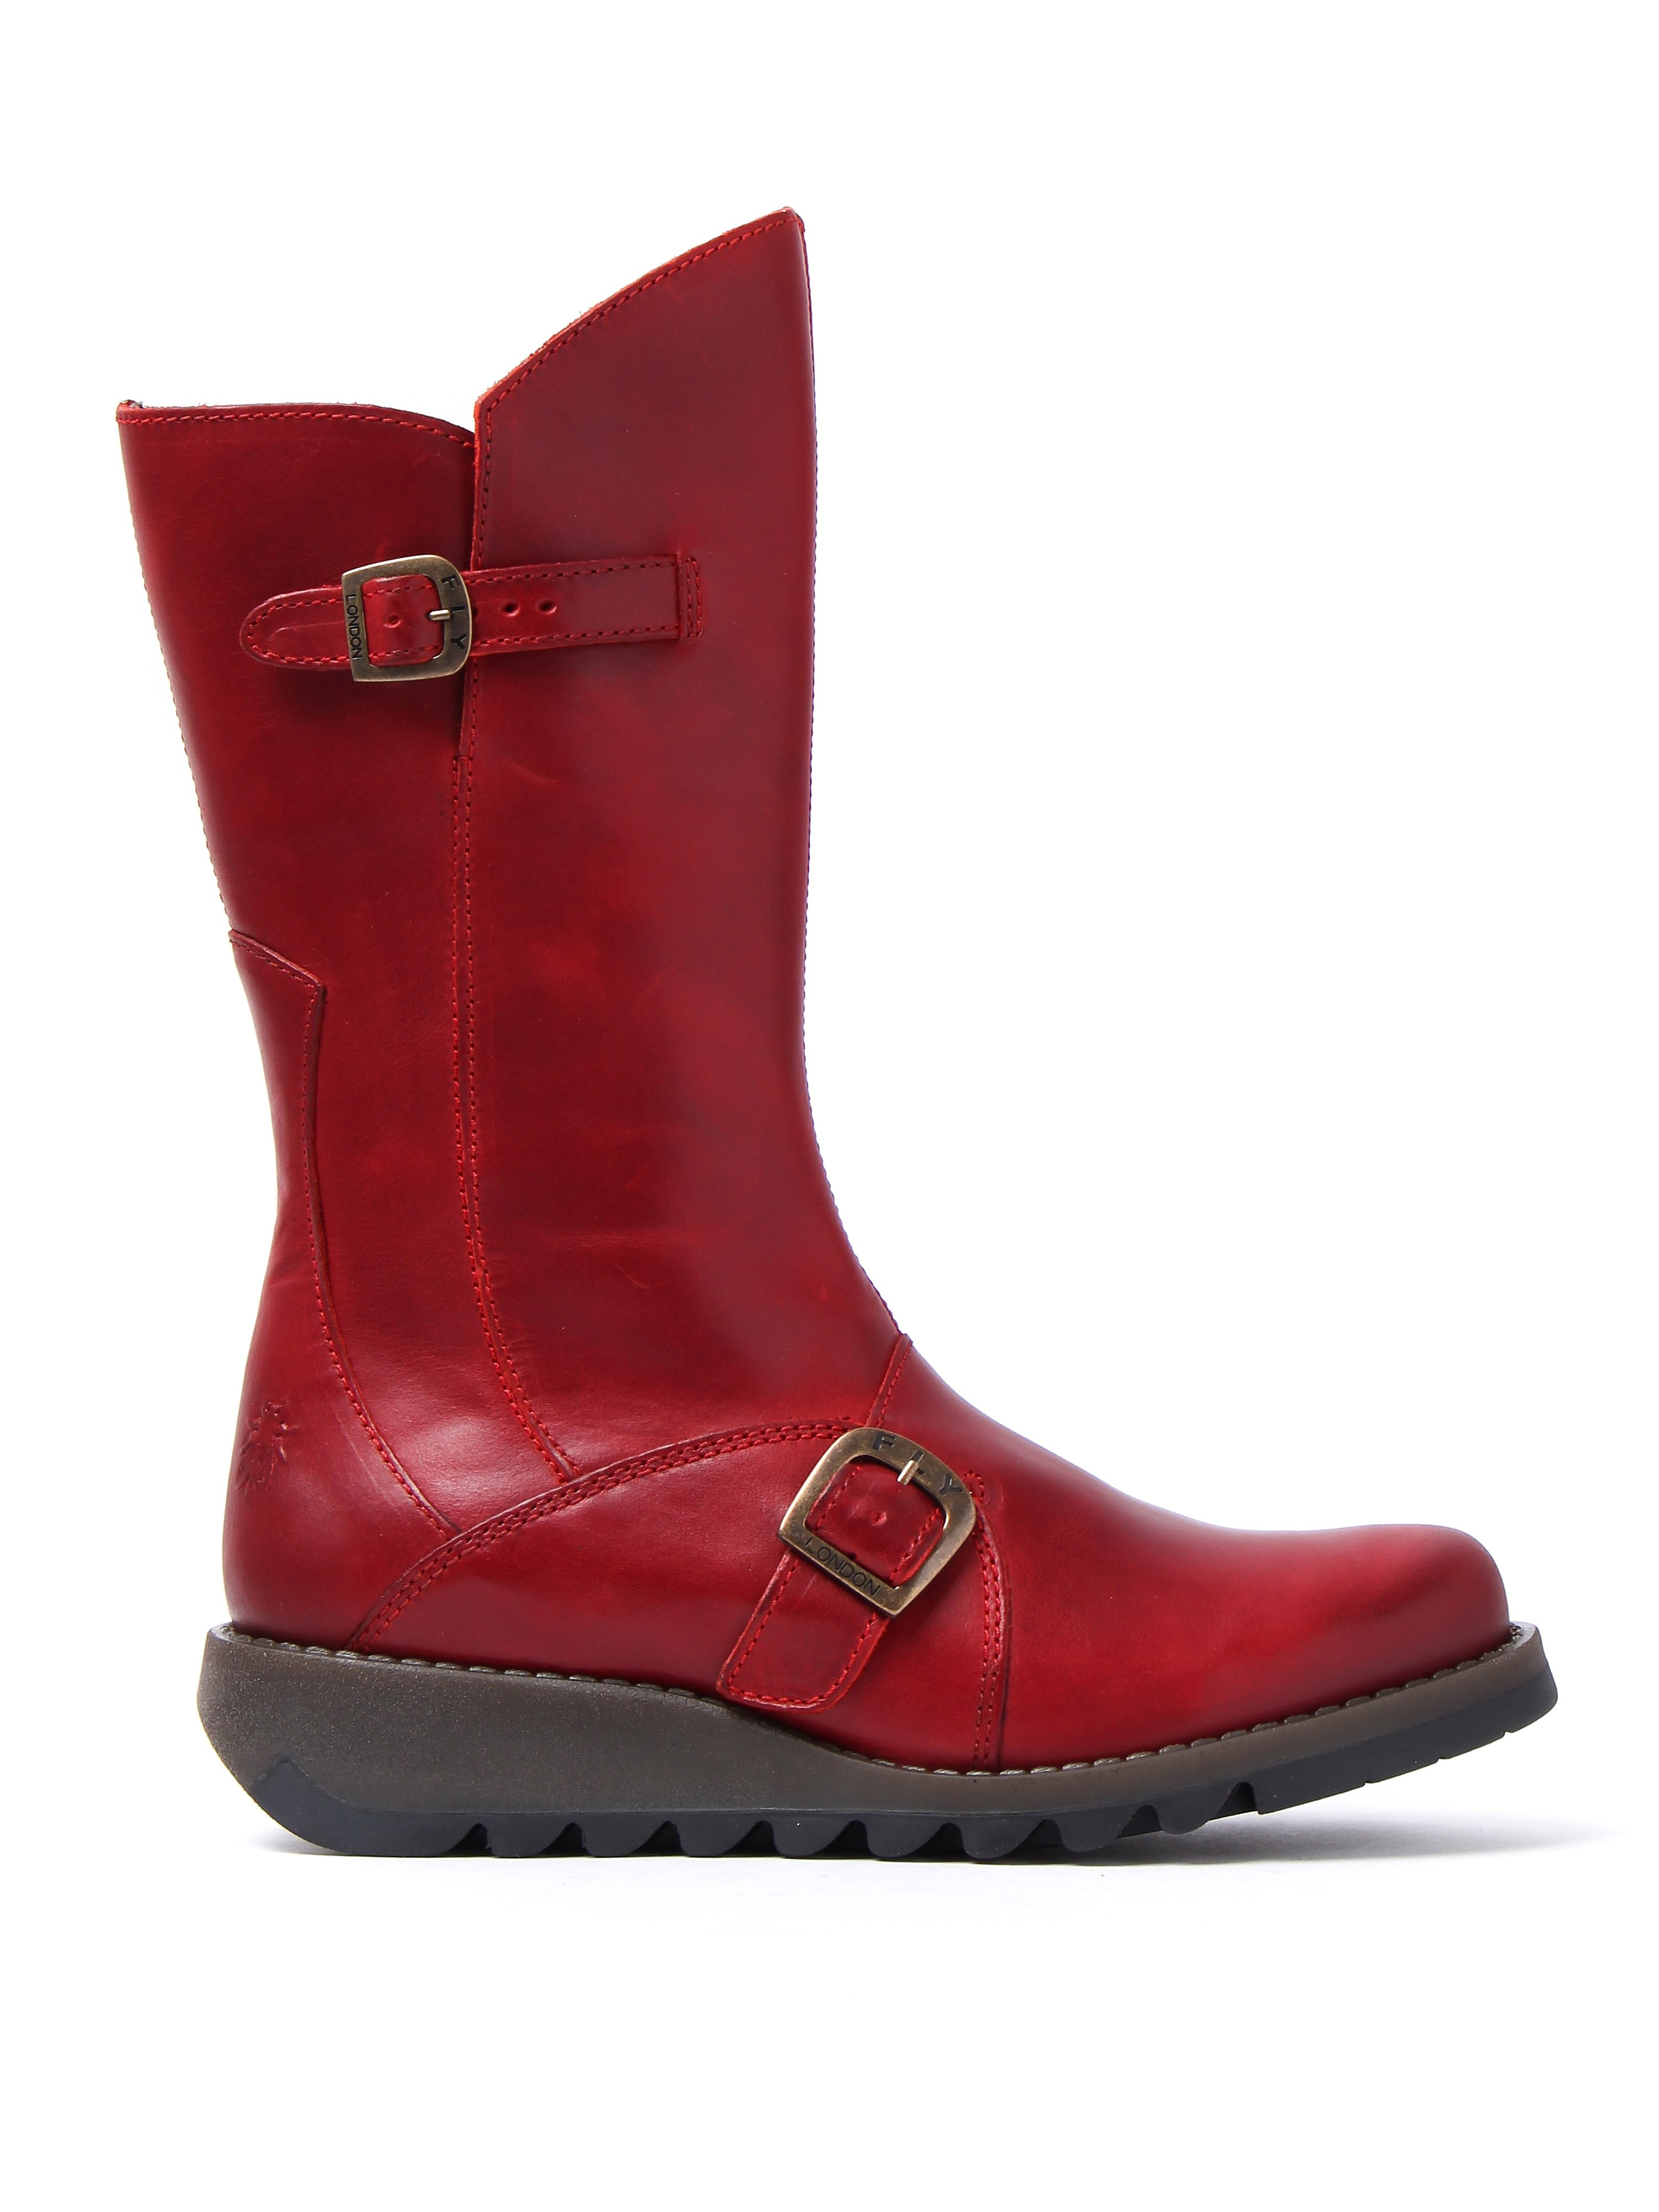 Fly London Women's Mes 2 Biker Boots - Red